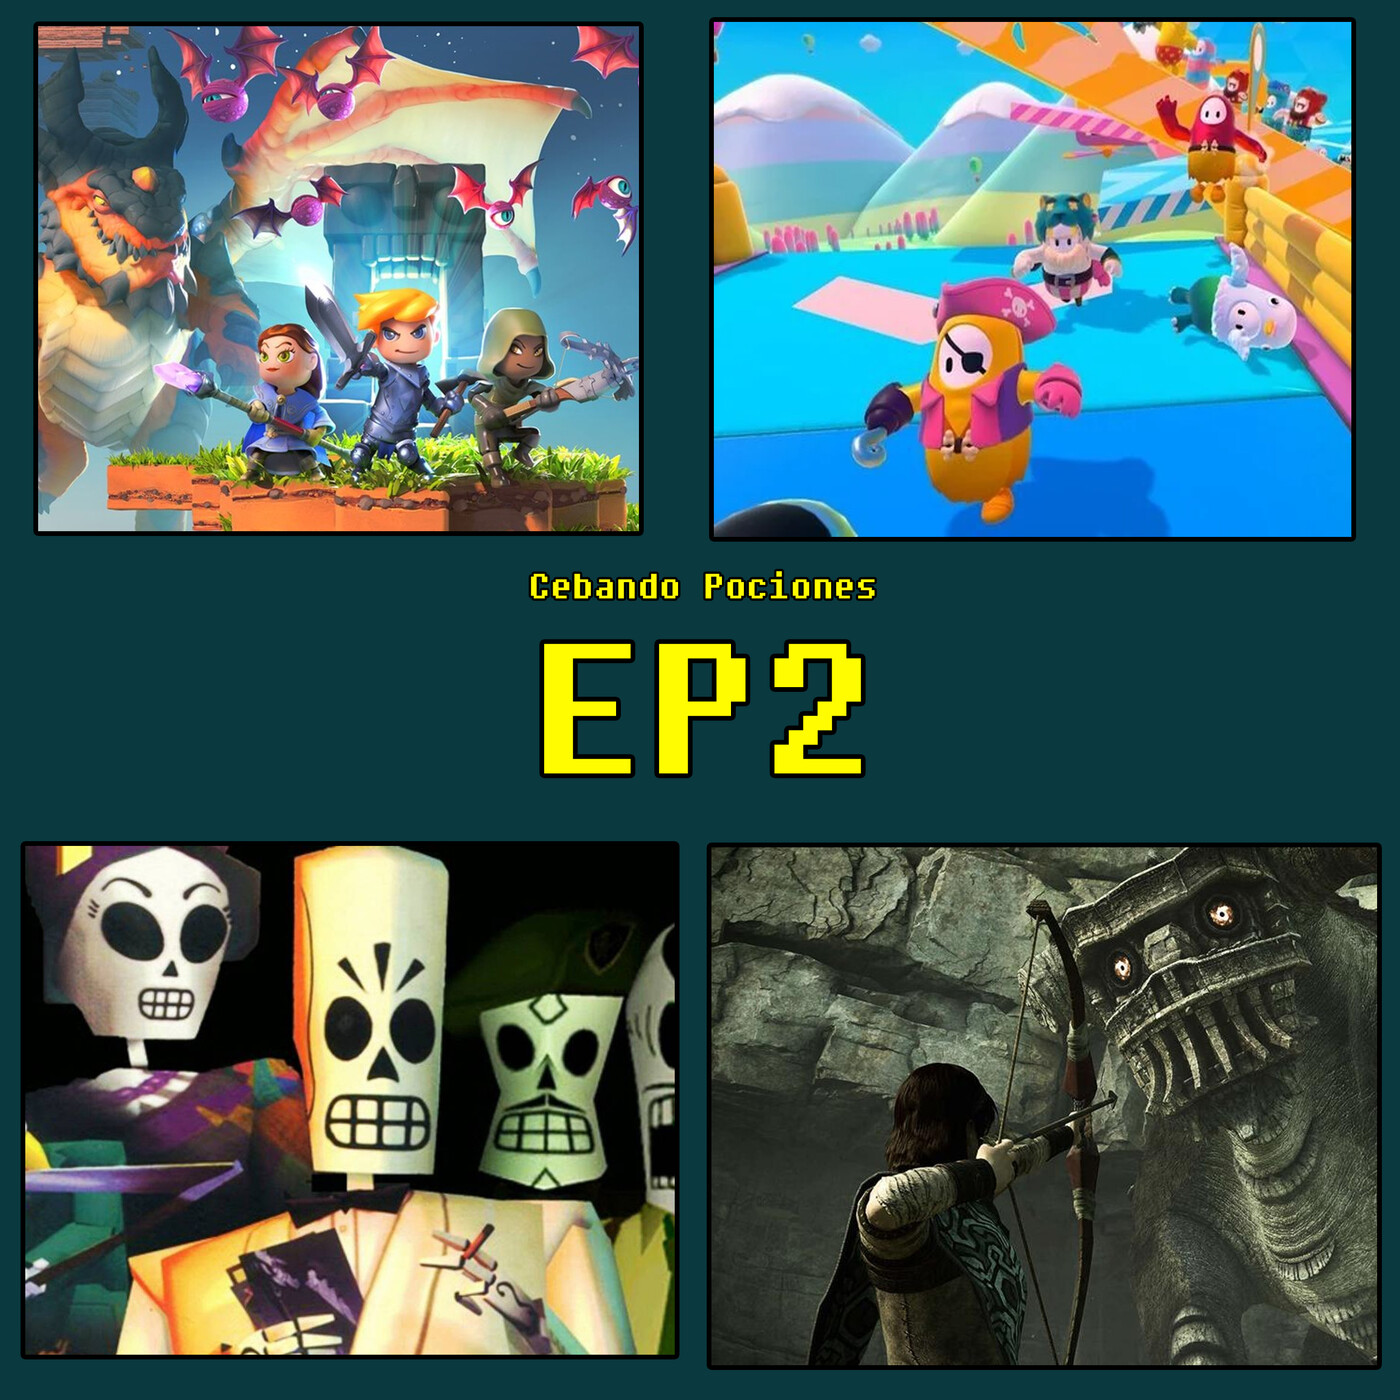 Episodio 2 - Cleptómanos, Indies y Noticias Interesantes